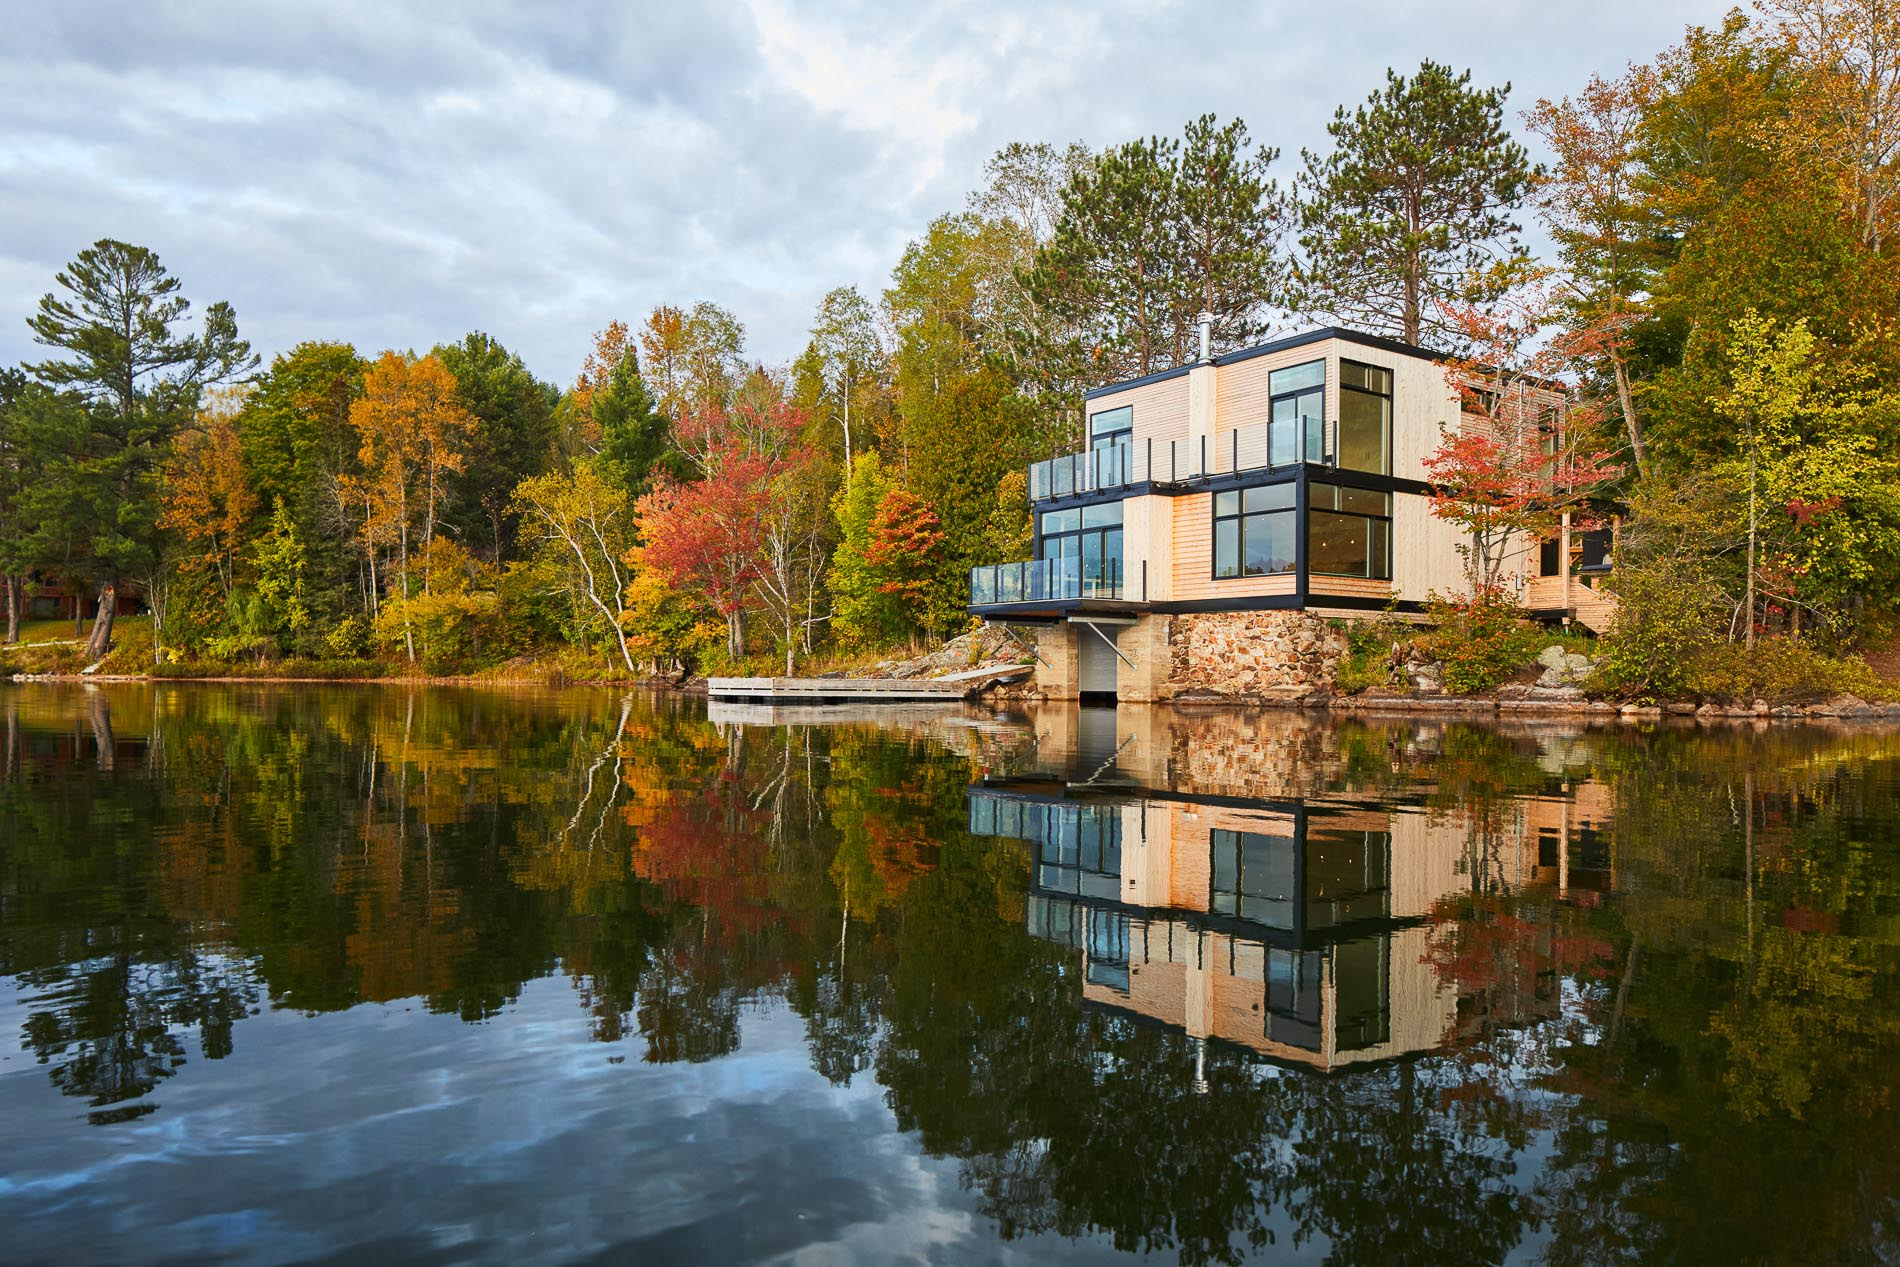 A modern lakefront house with a wood exterior.